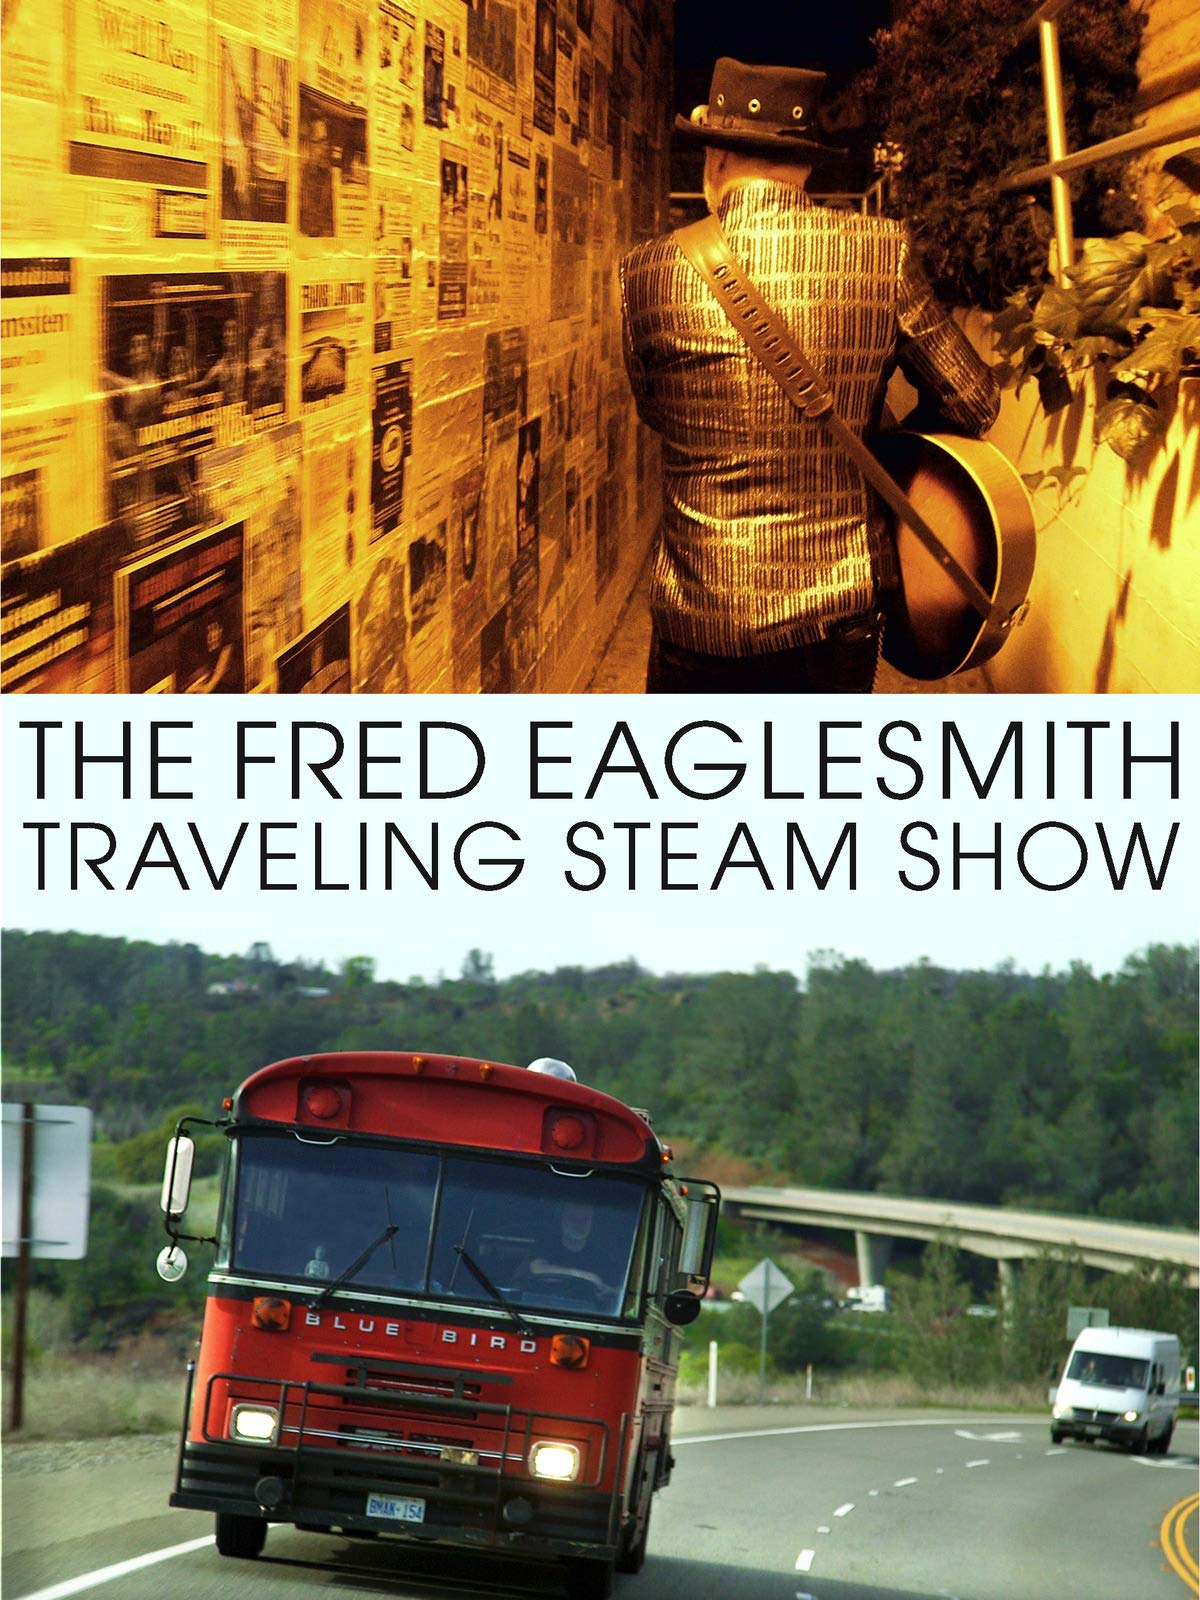 The Fred Eaglesmith Traveling Steam Show